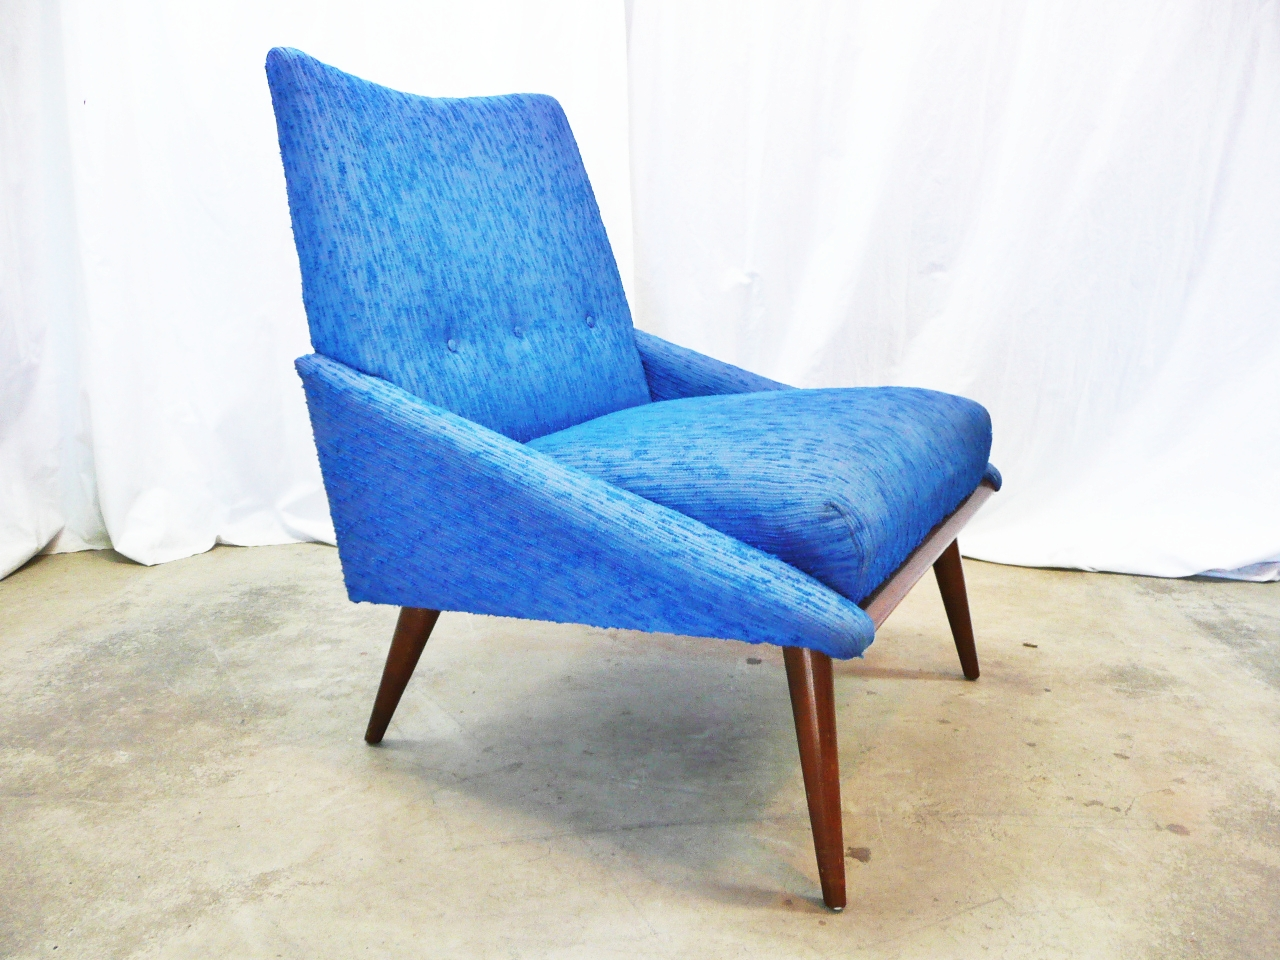 Blue Slipper Chair Modern Mid Century Danish Vintage Furniture Shop Used